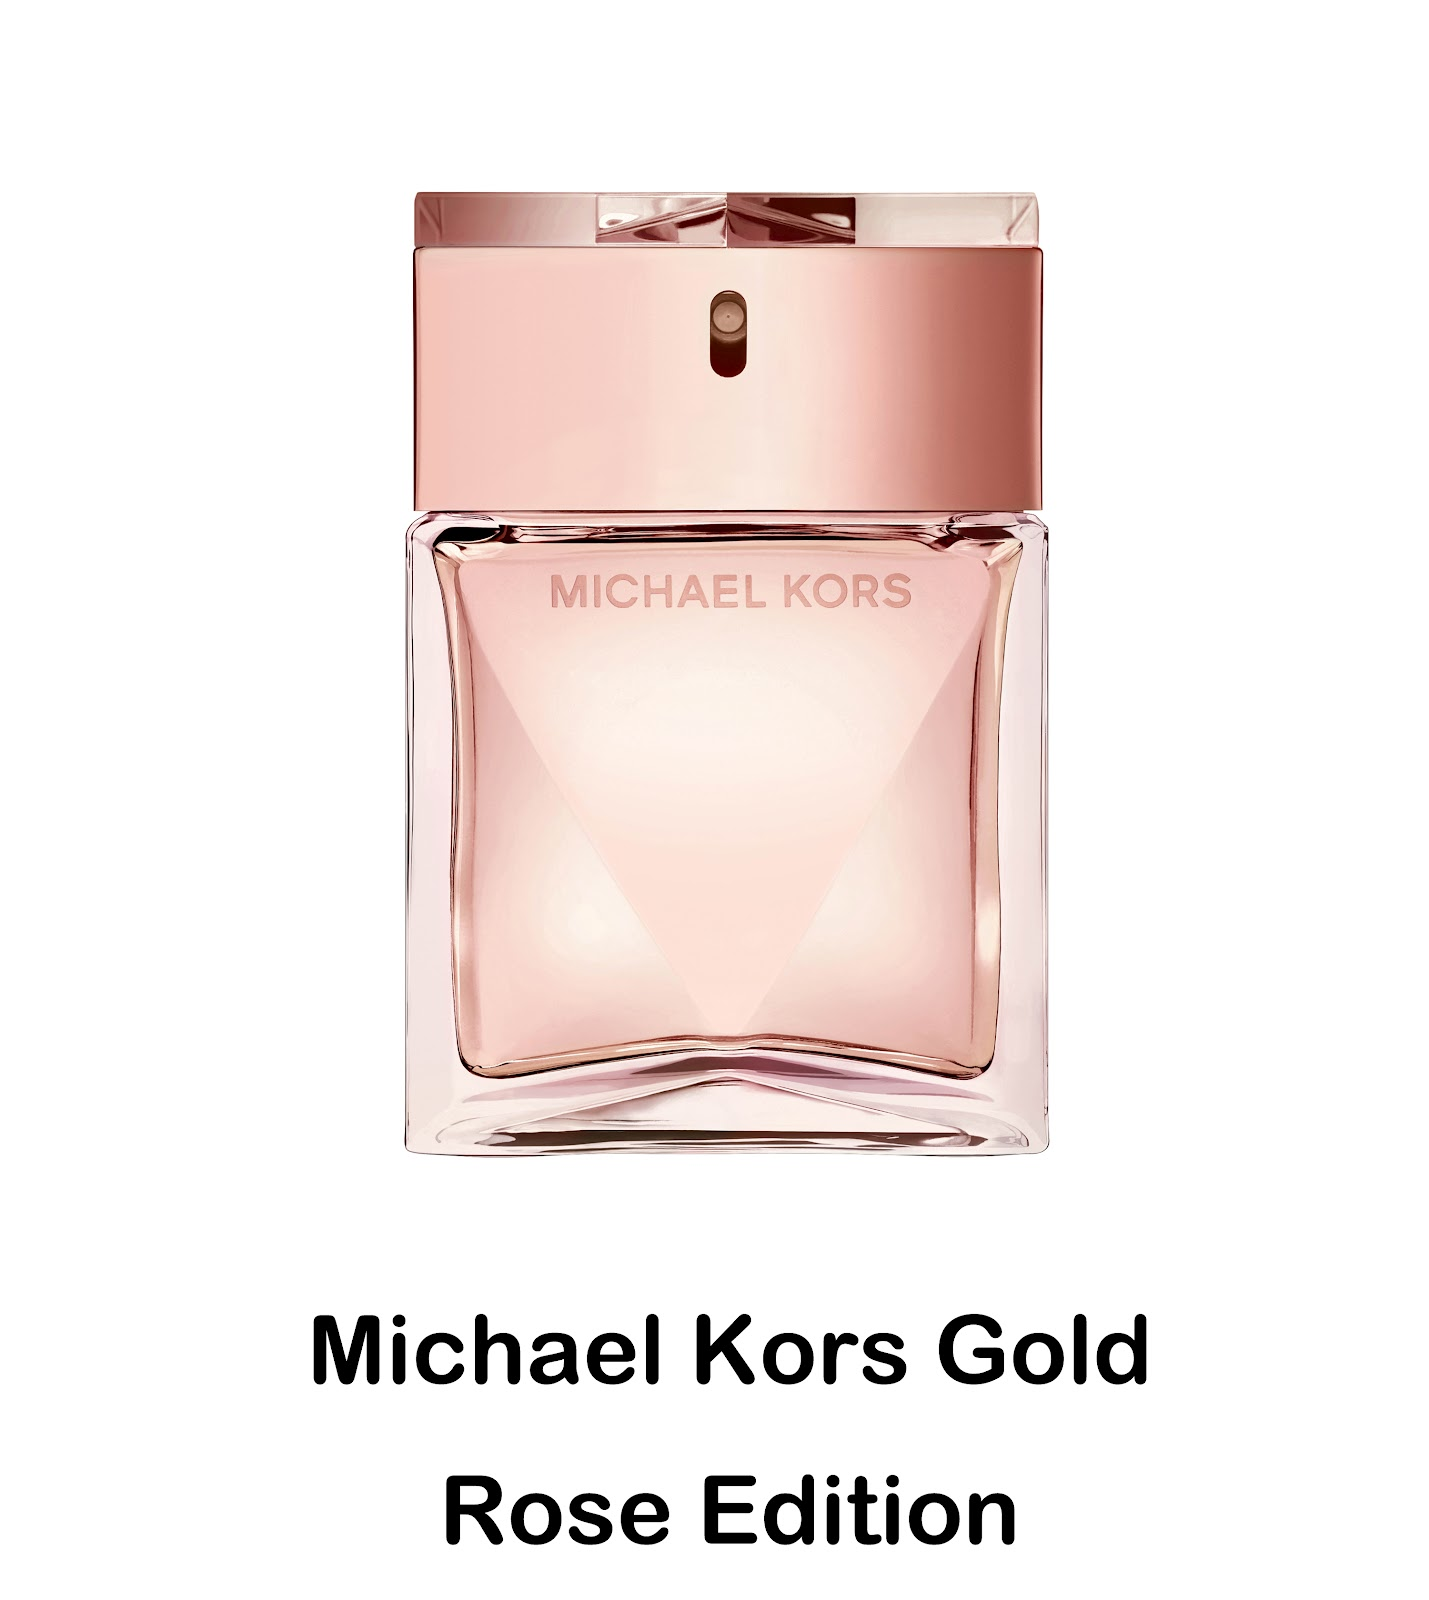 Michael Kors Gold Rose Edition Perfume Review Pump Shoes